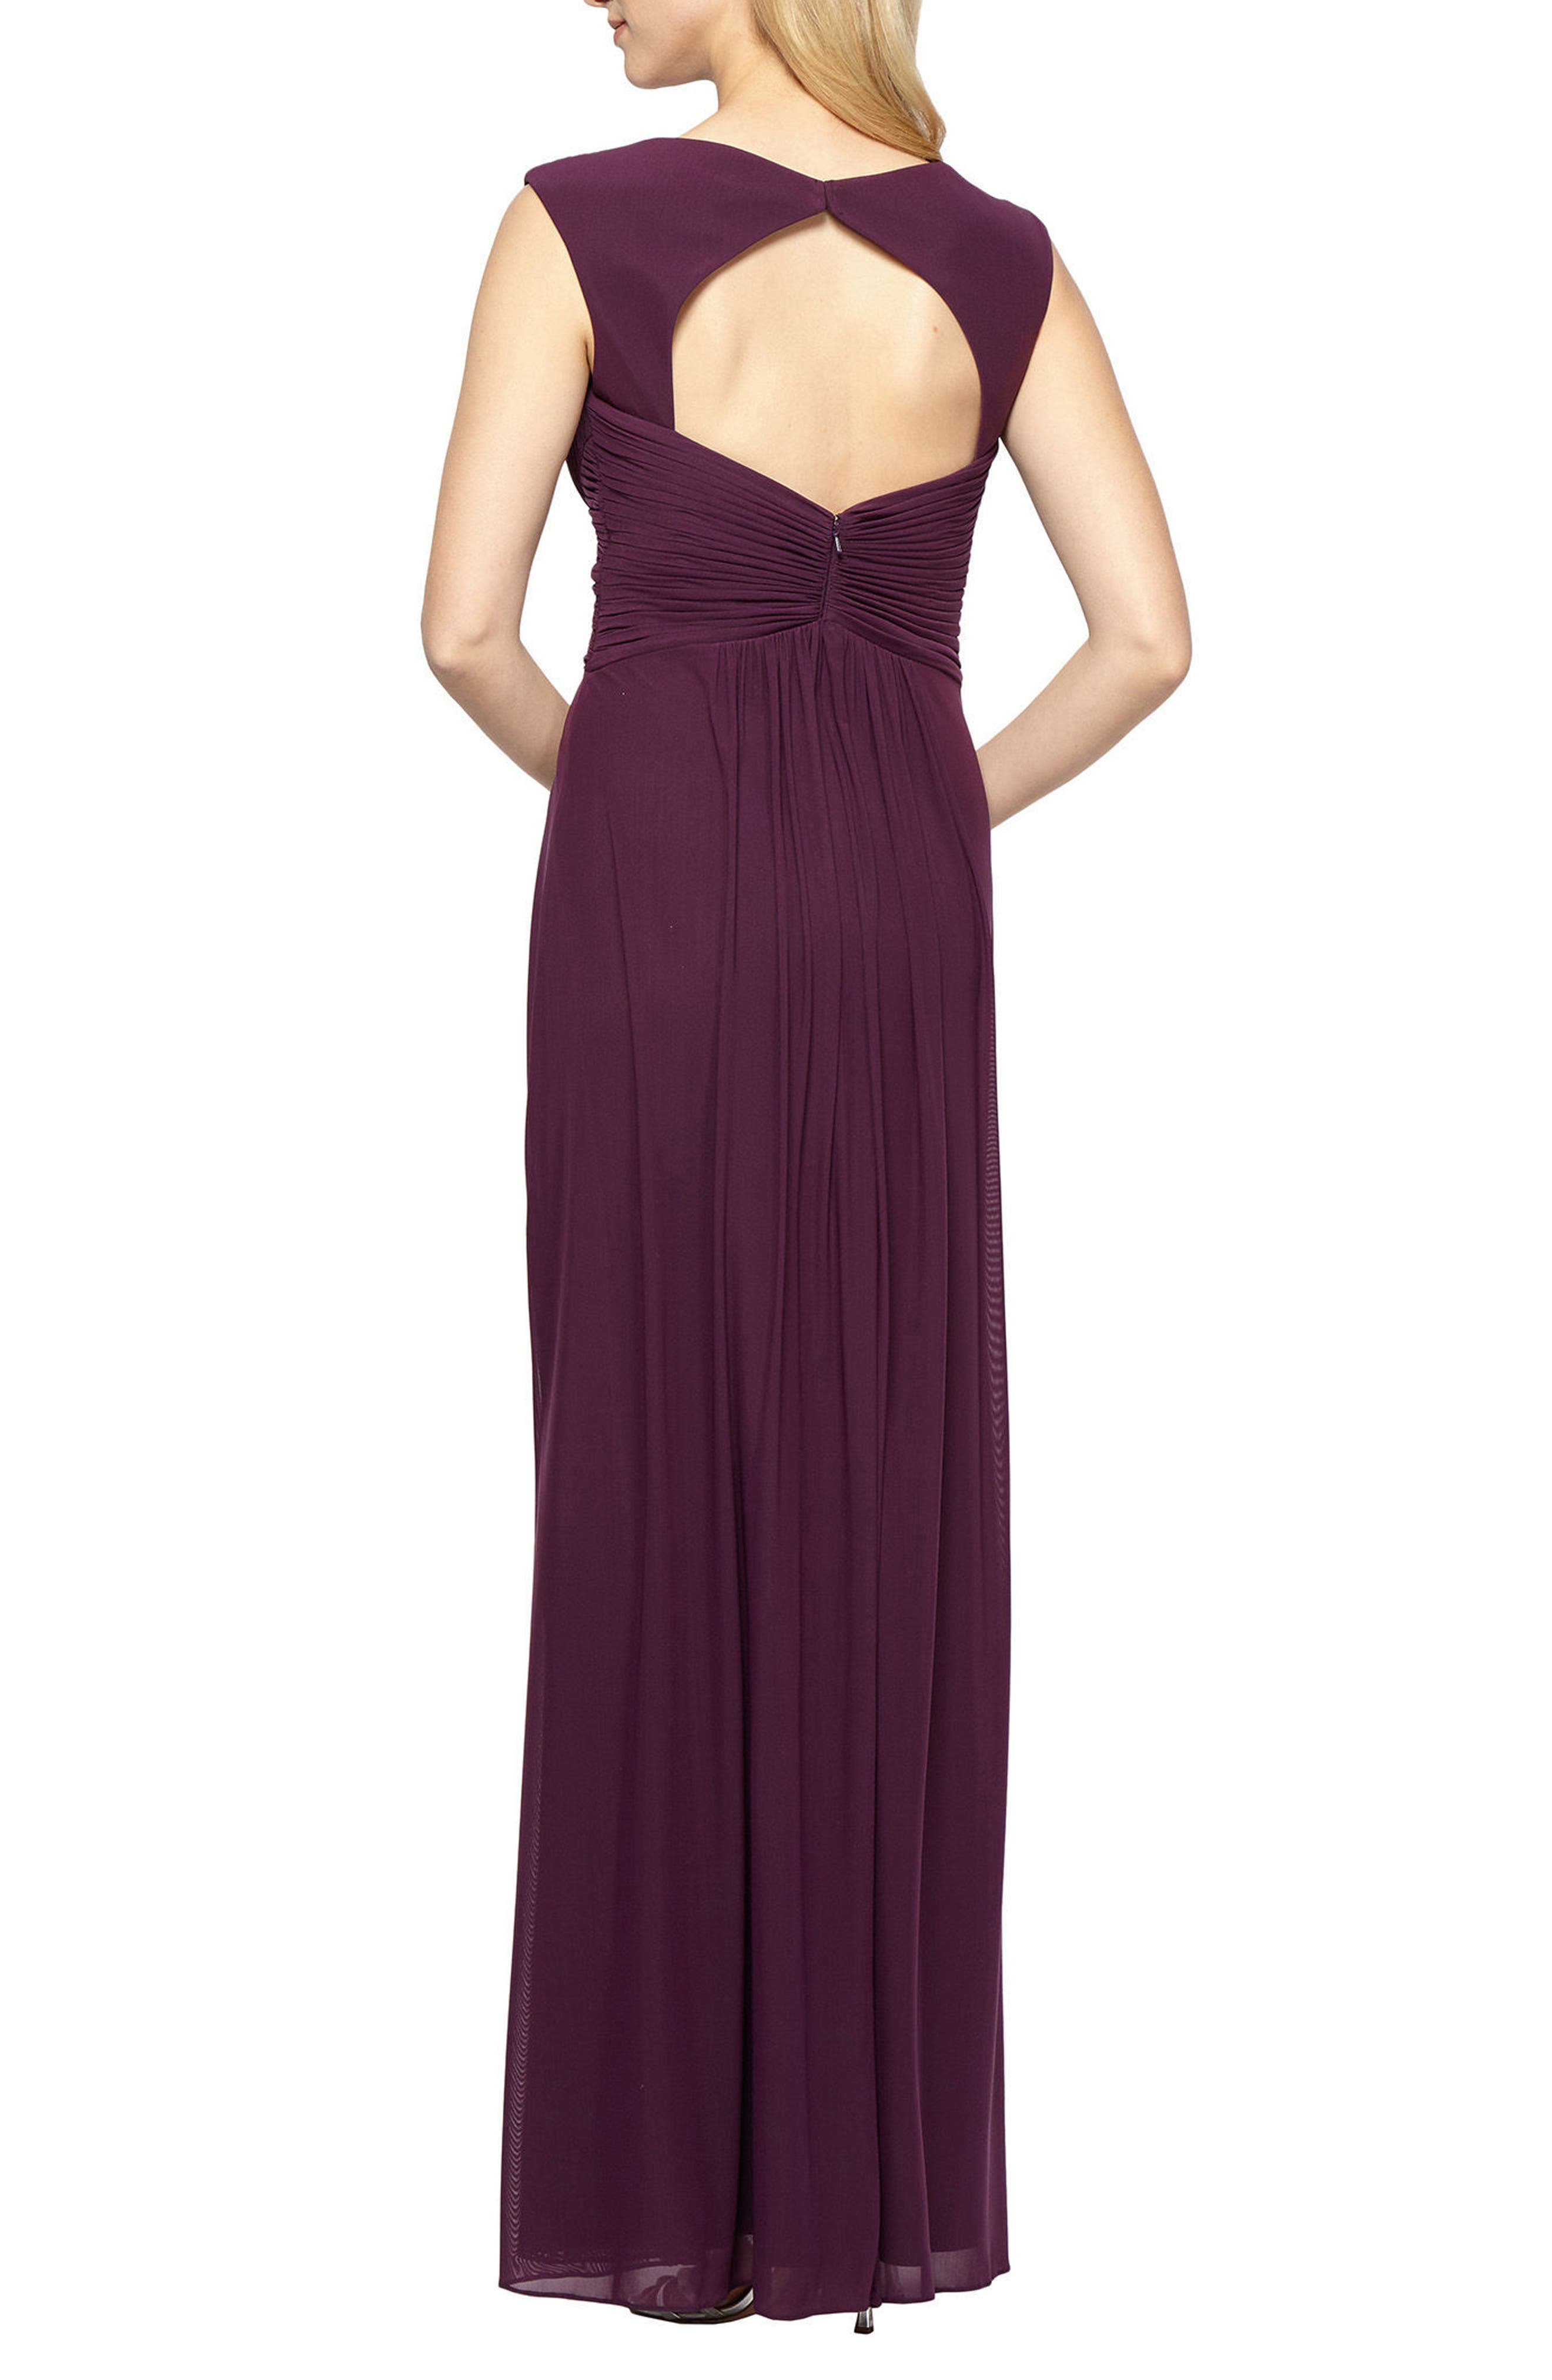 A-Line Gown,                             Alternate thumbnail 2, color,                             Plum